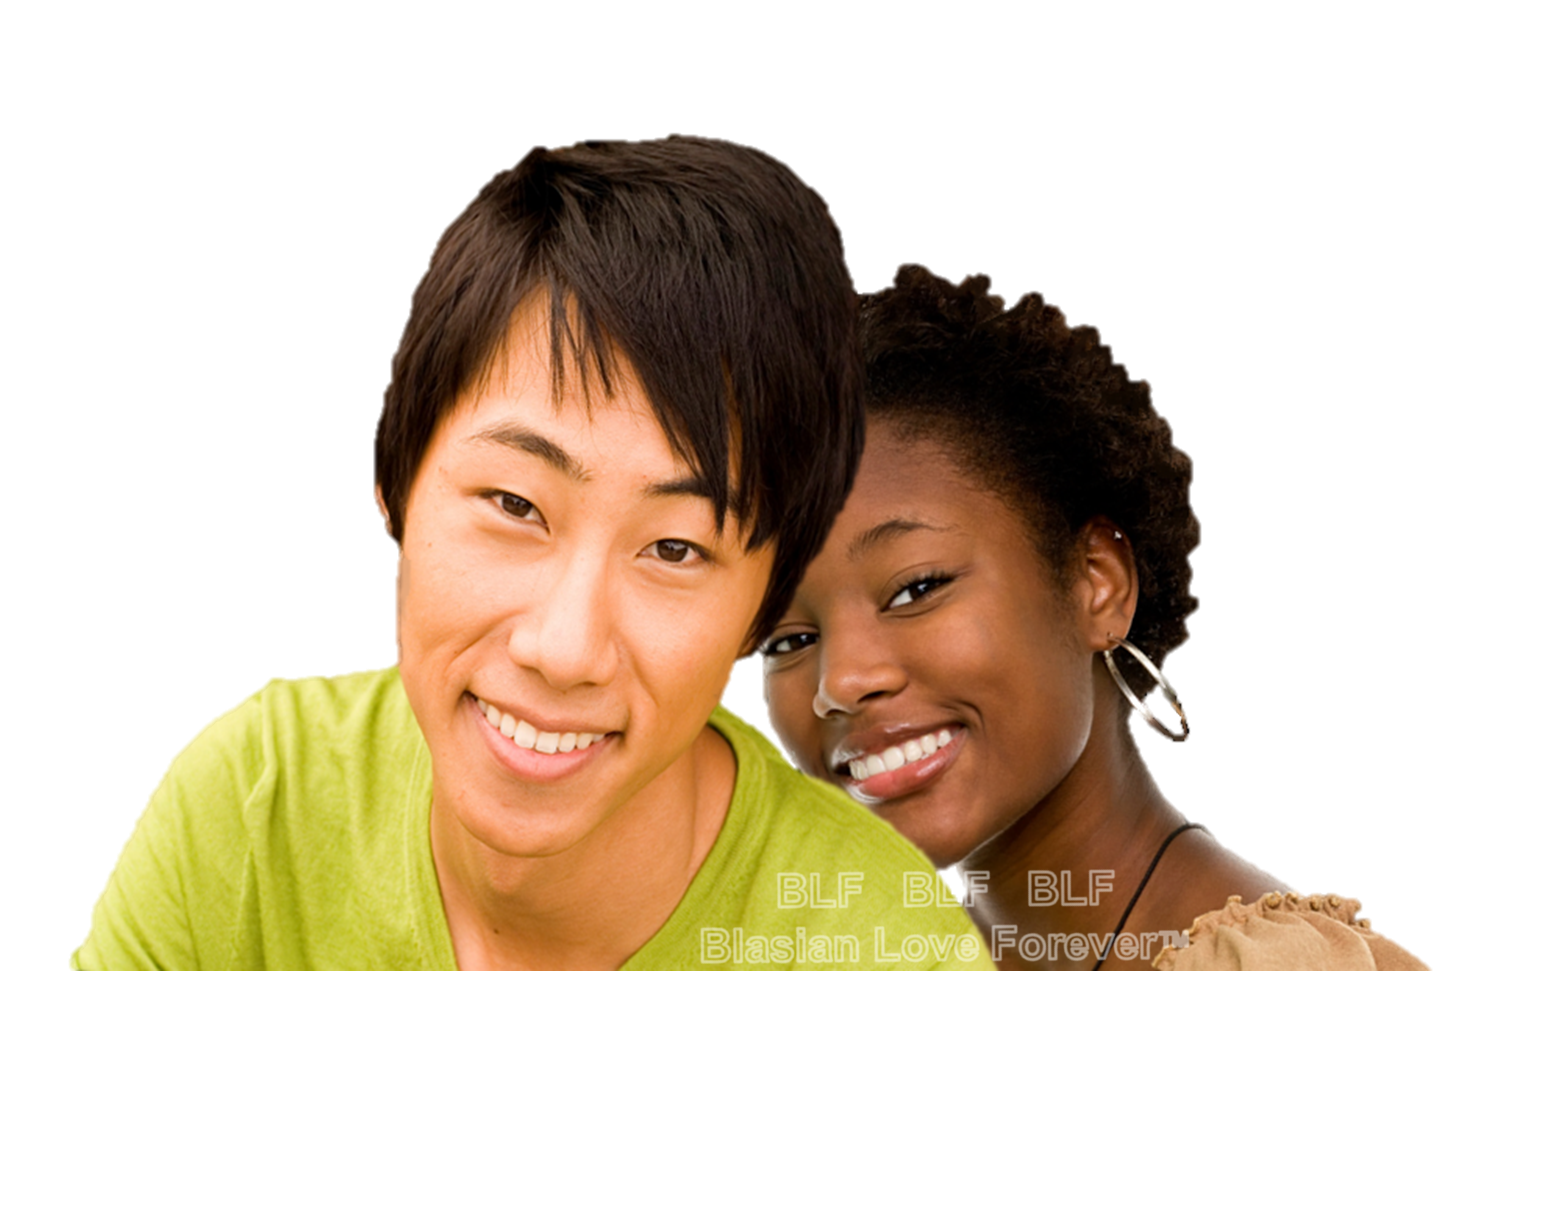 seabrook black women dating site Friendfinder does not conduct criminal background screening of its members to learn about internet dating safety, click here.